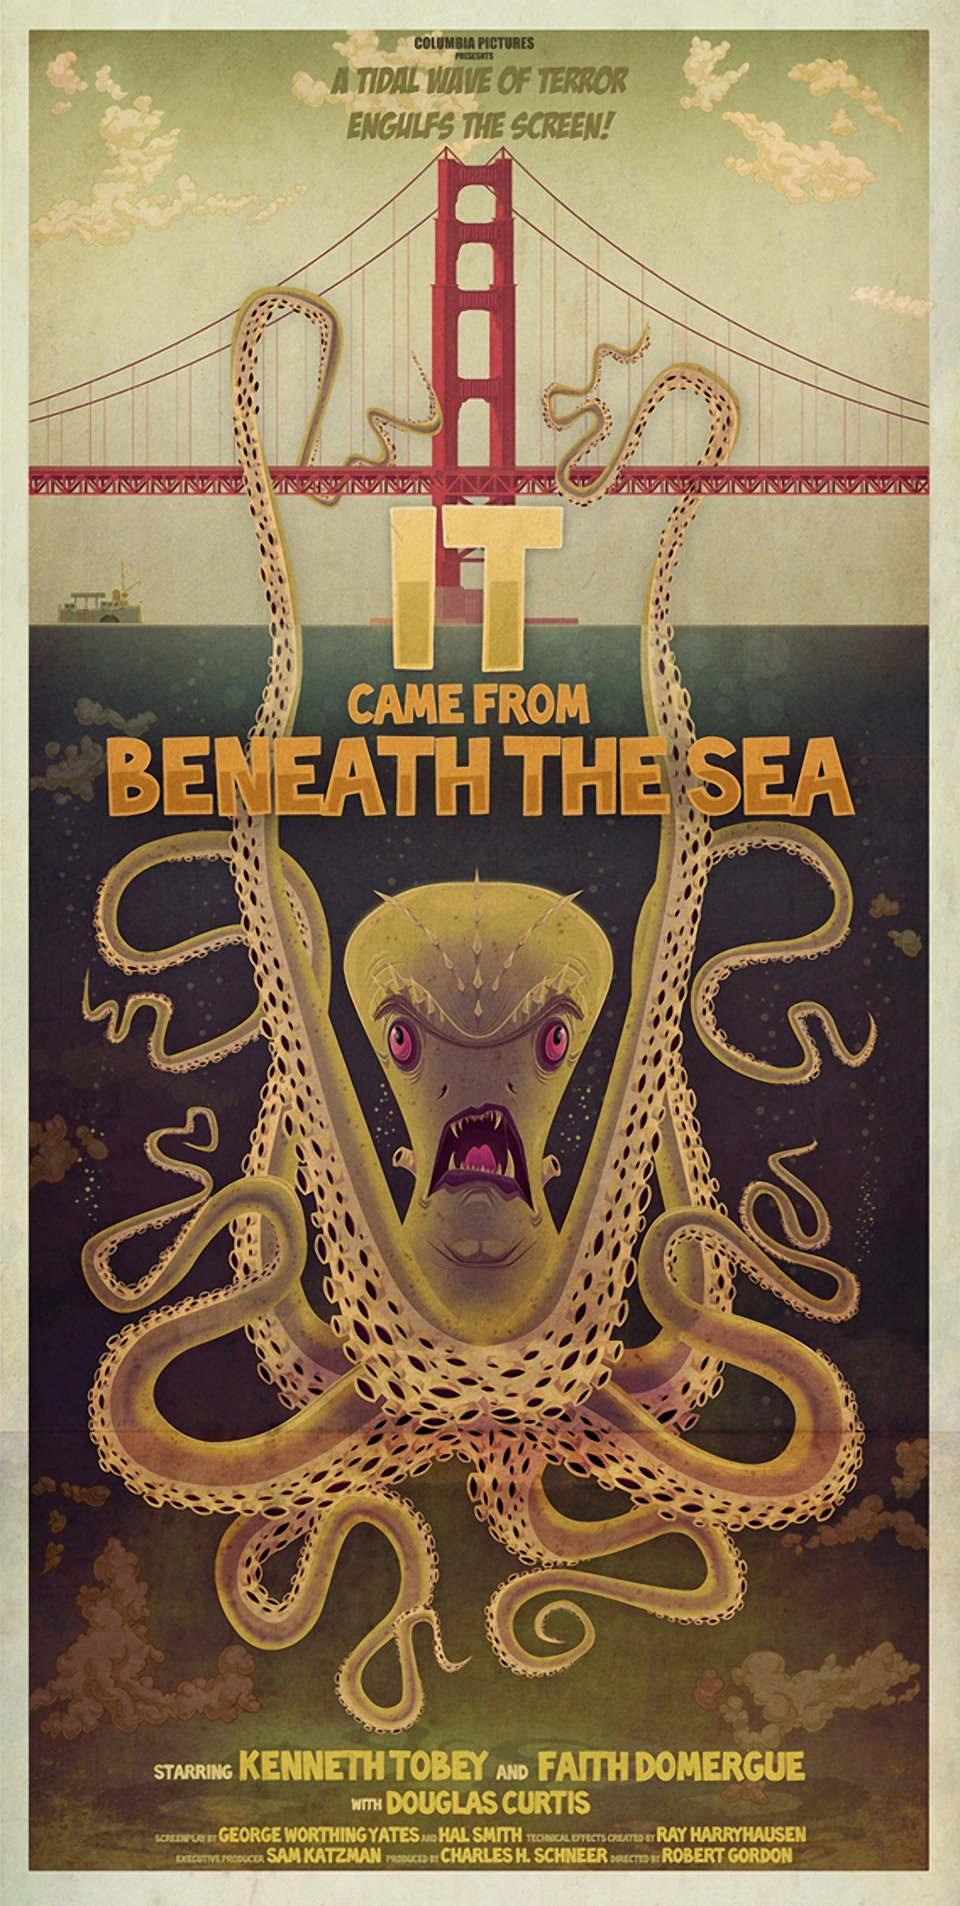 Monster Print: It Came From Beneath the Sea